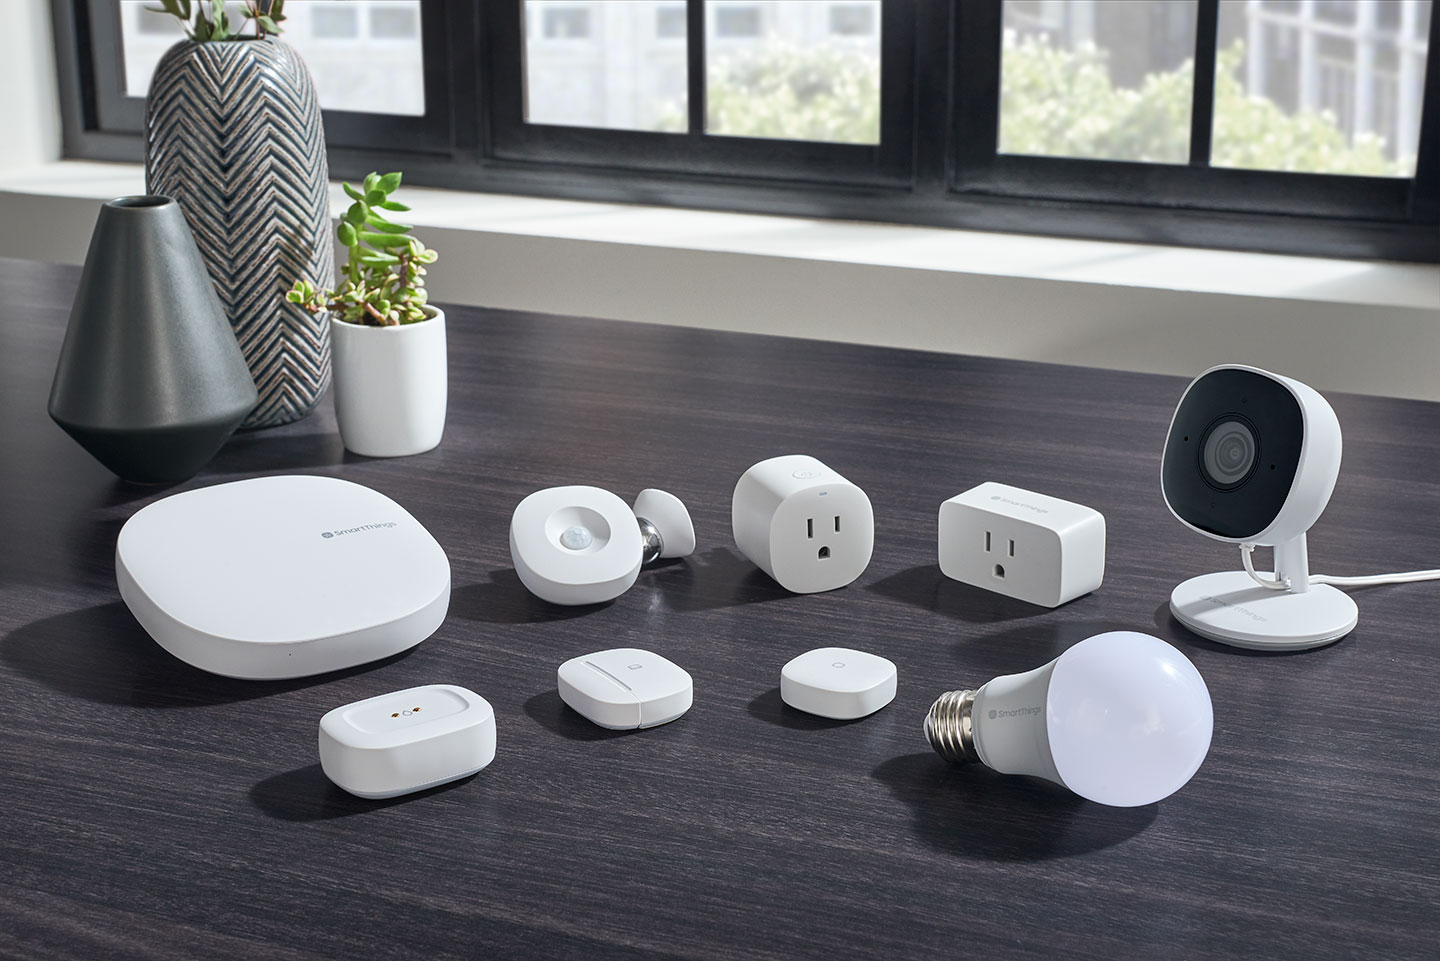 Samsung SmartThings: Smart Home Automation | Samsung US